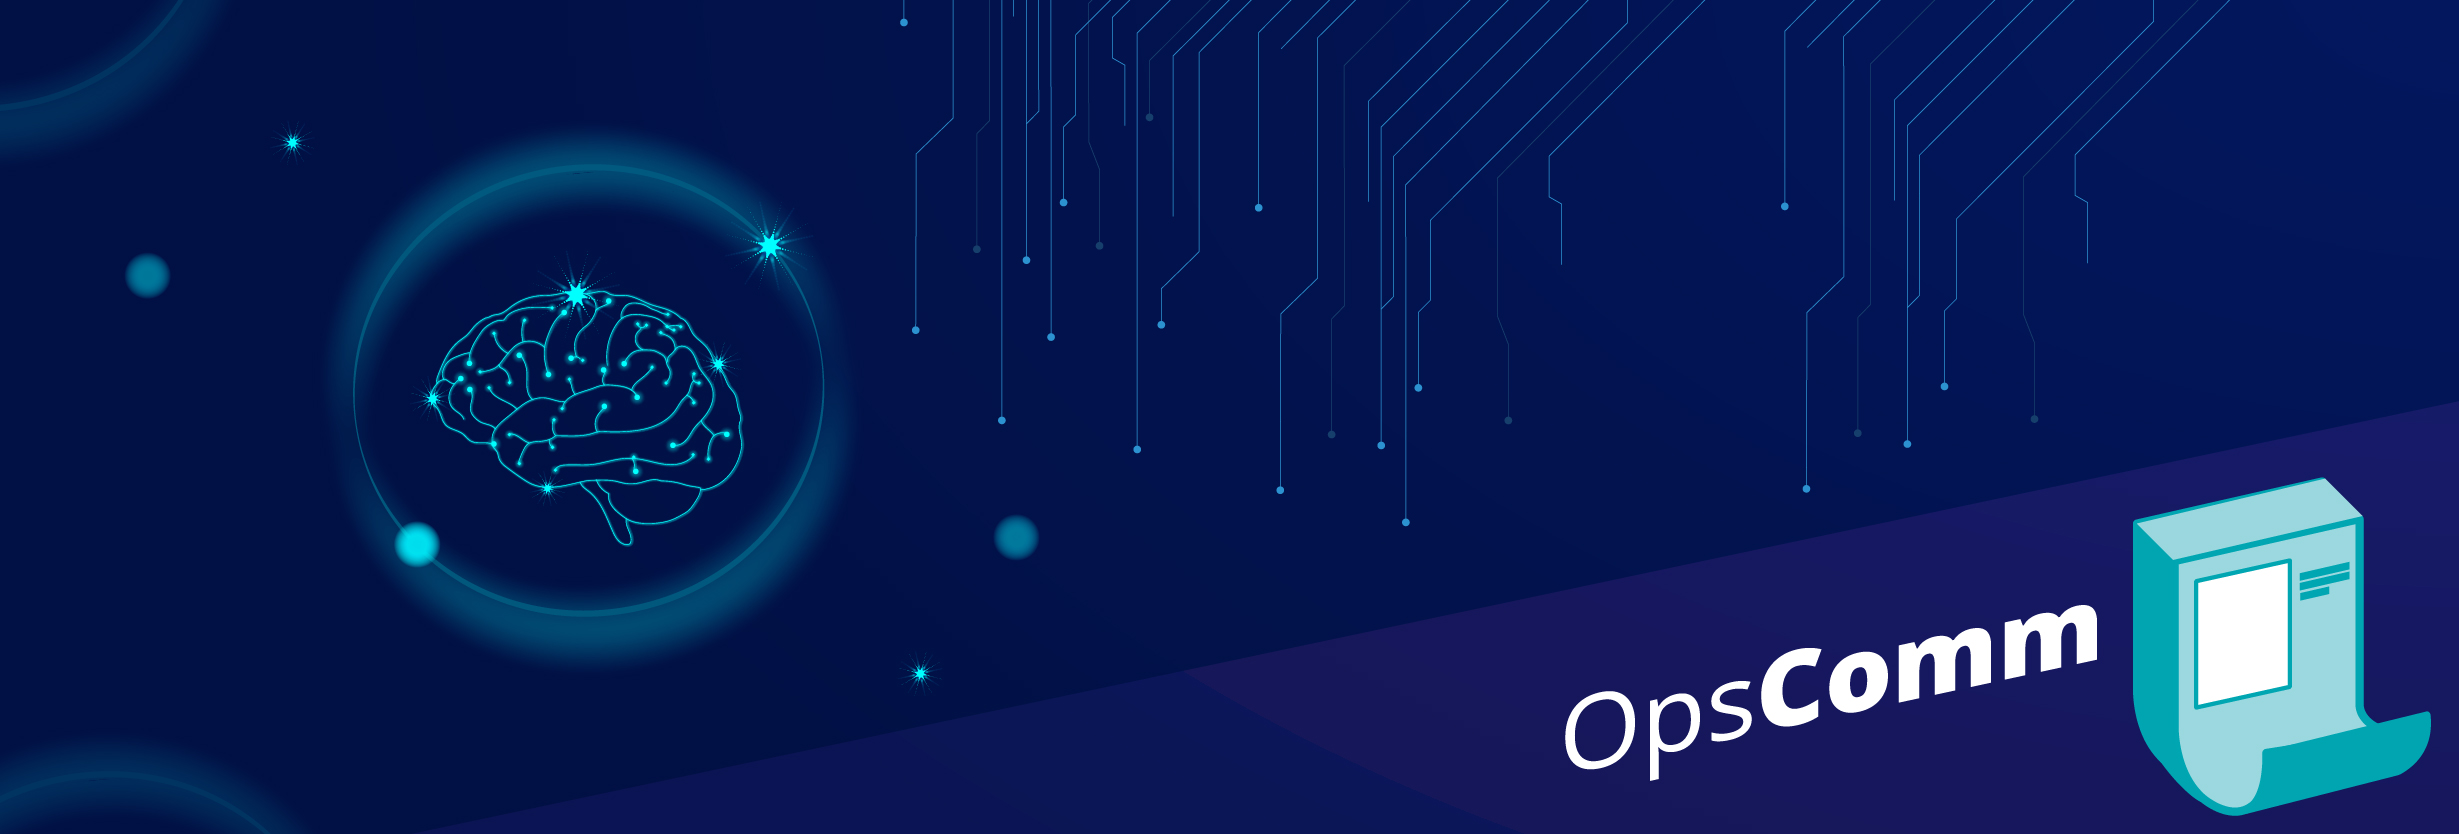 [OpsComm May] Continuing the AIOps Momentum with the Summer 2019 Release and State of AIOps Report